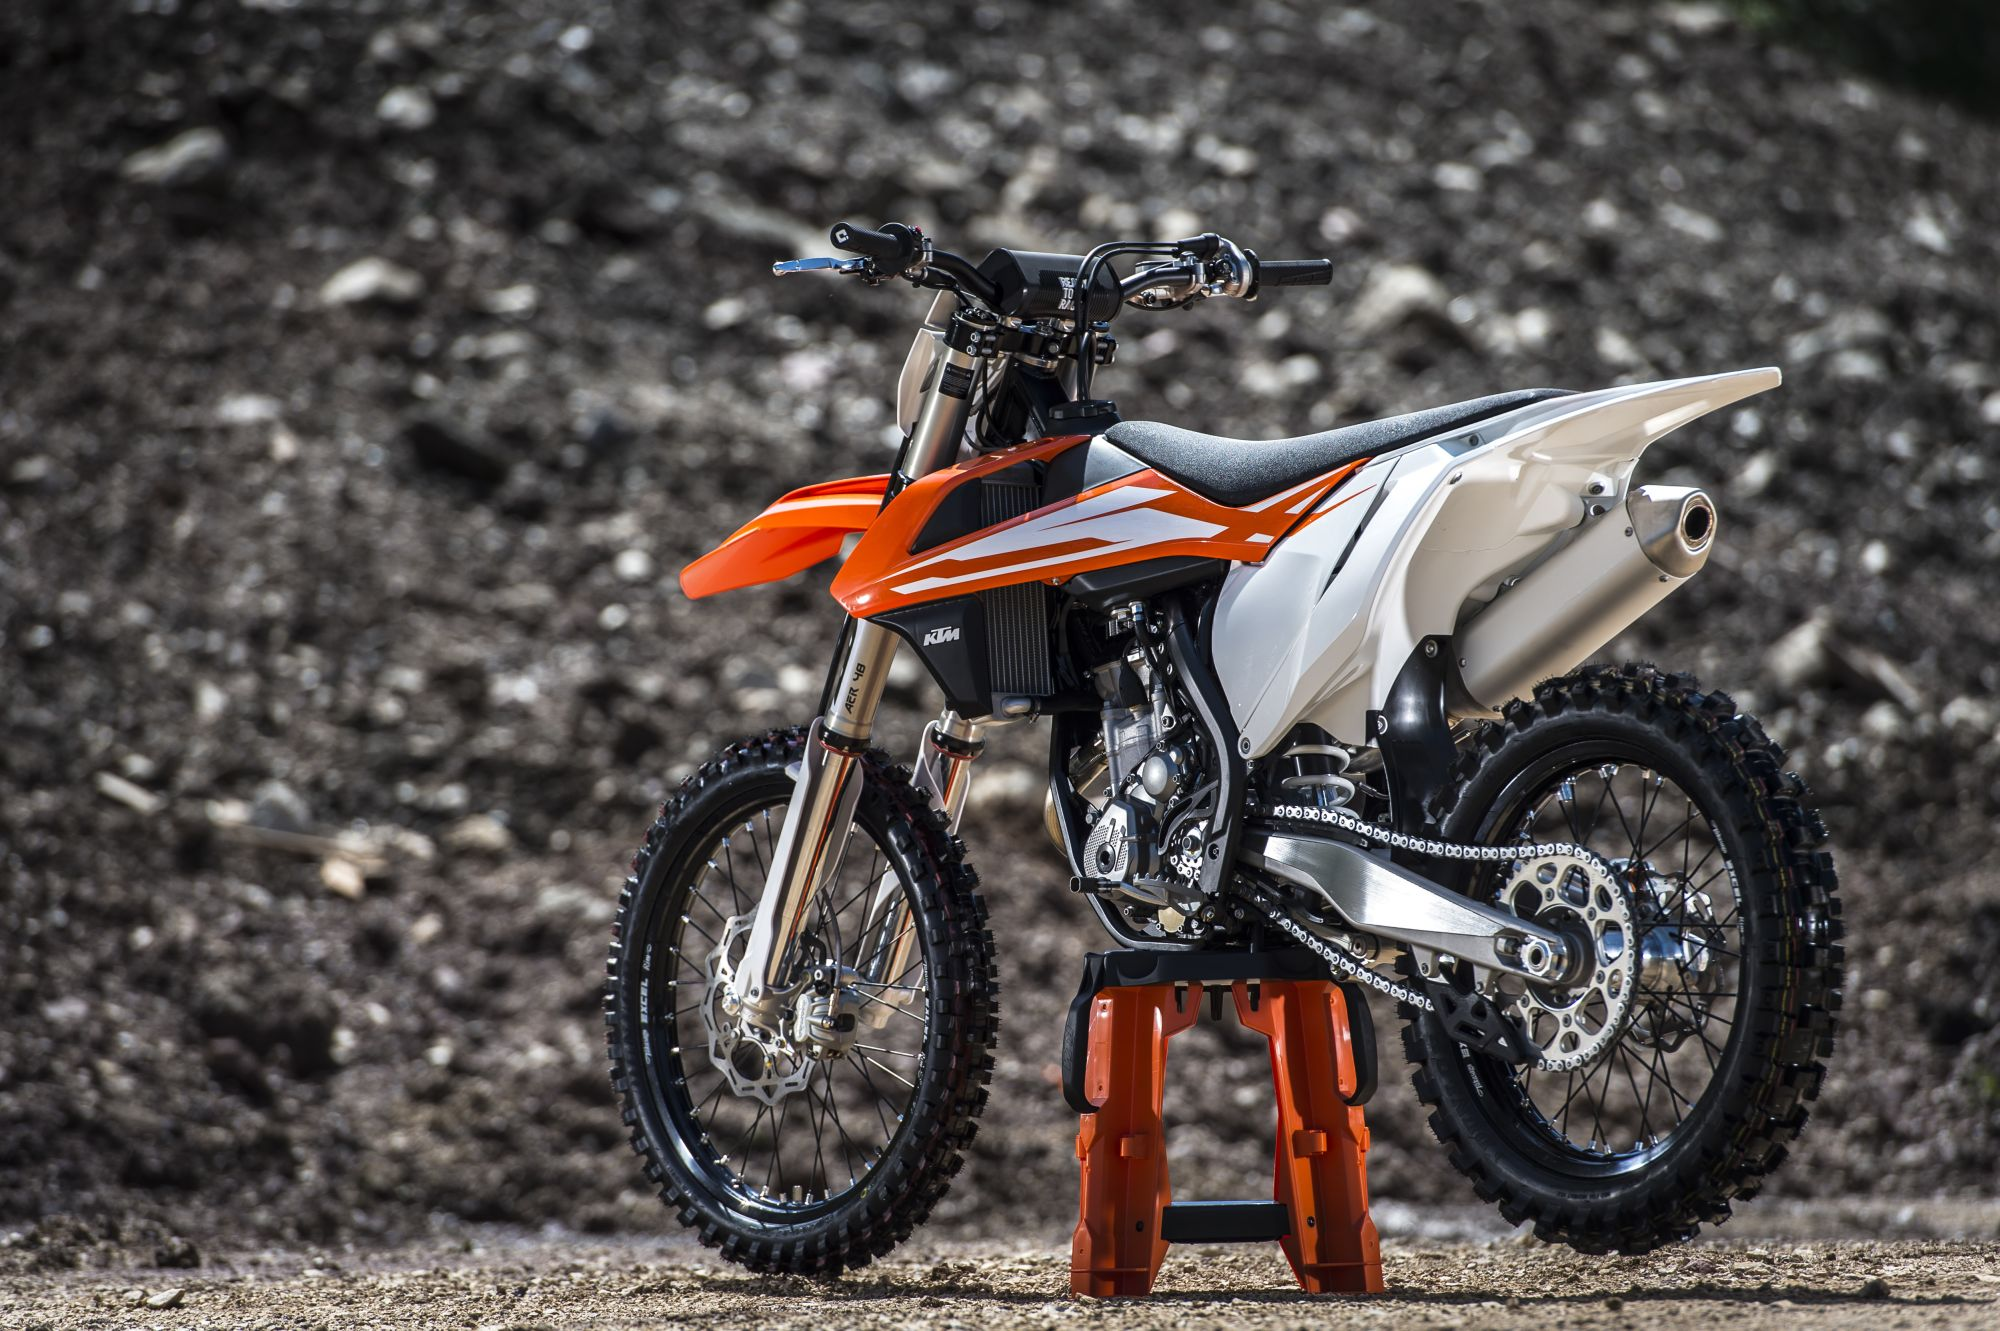 ktm 350 sx f all technical data of the model 350 sx f from ktm. Black Bedroom Furniture Sets. Home Design Ideas